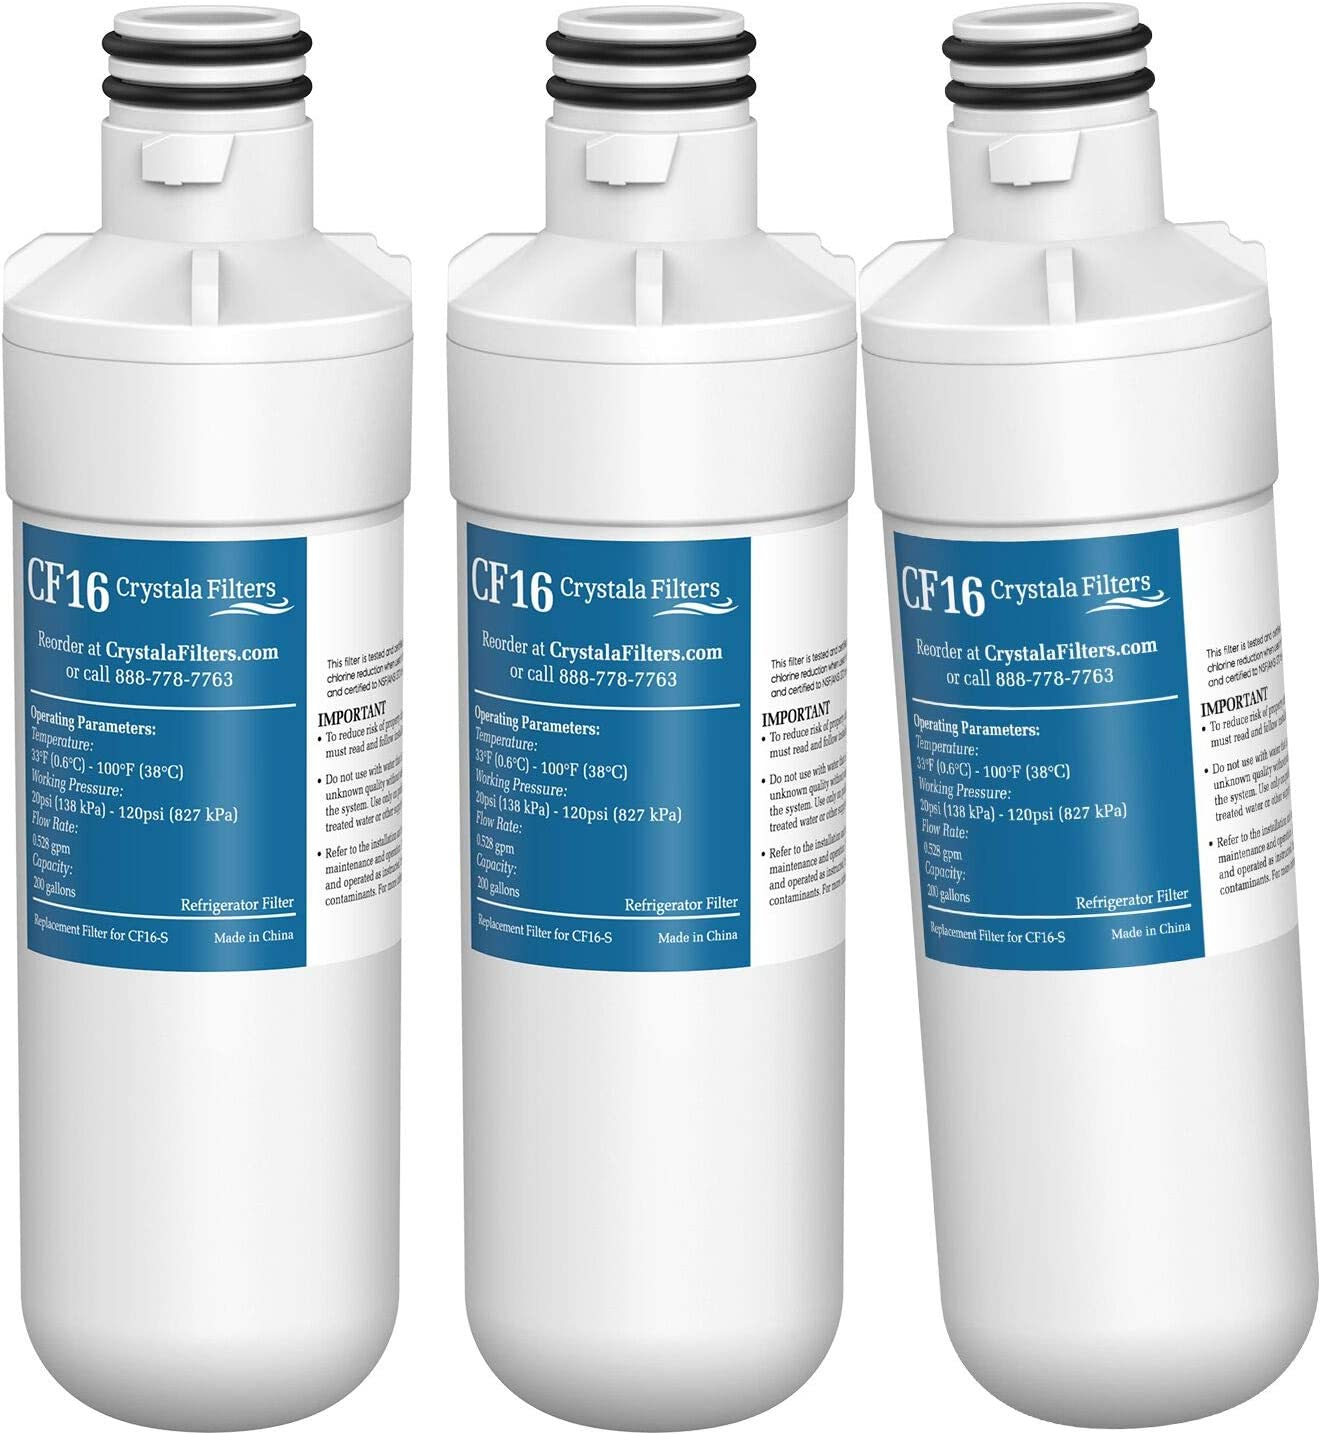 MDJ64844601 9980 Compatible with LG LT1000P LT-1000PC 3 PACK LT1000PC Kenmore 46-9980 ADQ74793501 by Pureza LT1000P Refrigerator Water Filter ADQ74793502